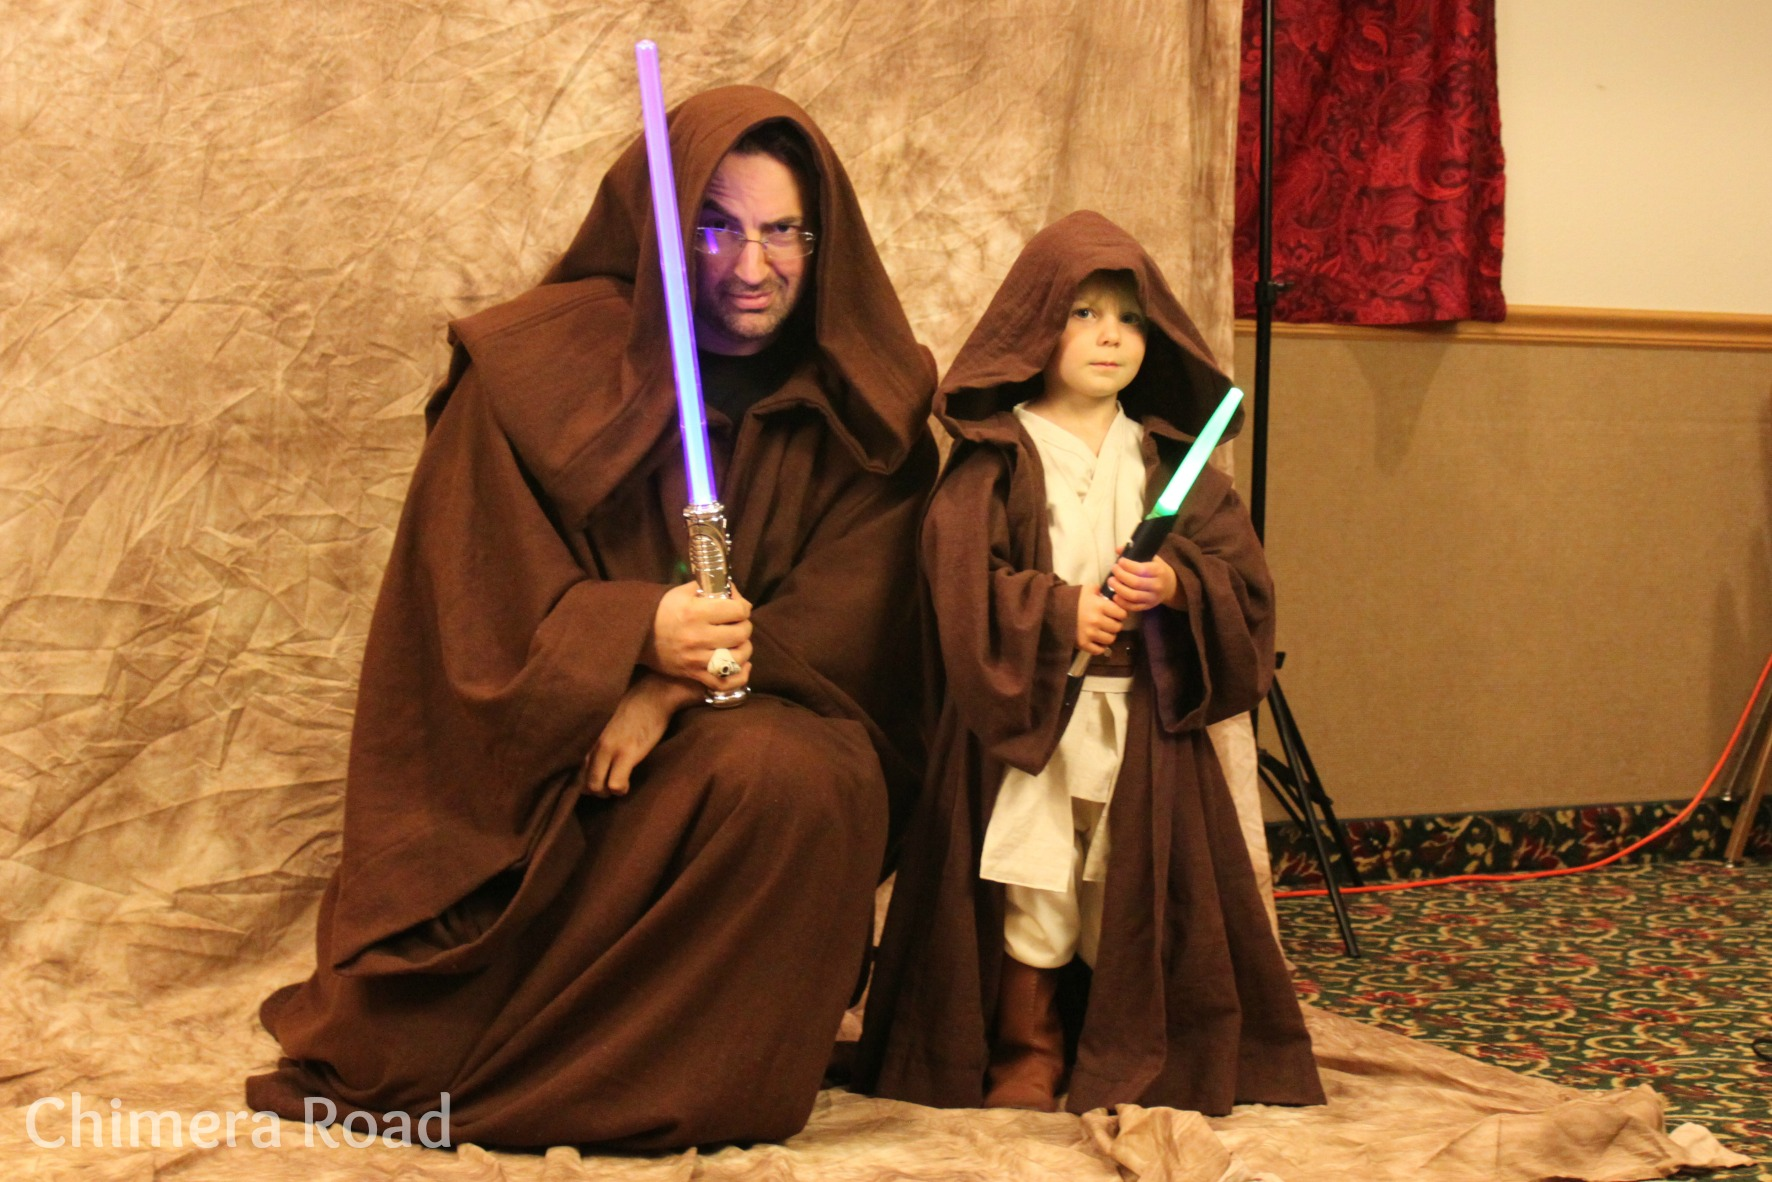 Munchkin posing with Jim Butcher, author extraordinaire, Miscon Guest of Honor 2013, and wearer of an adult sized Jedi cloak I made. :D